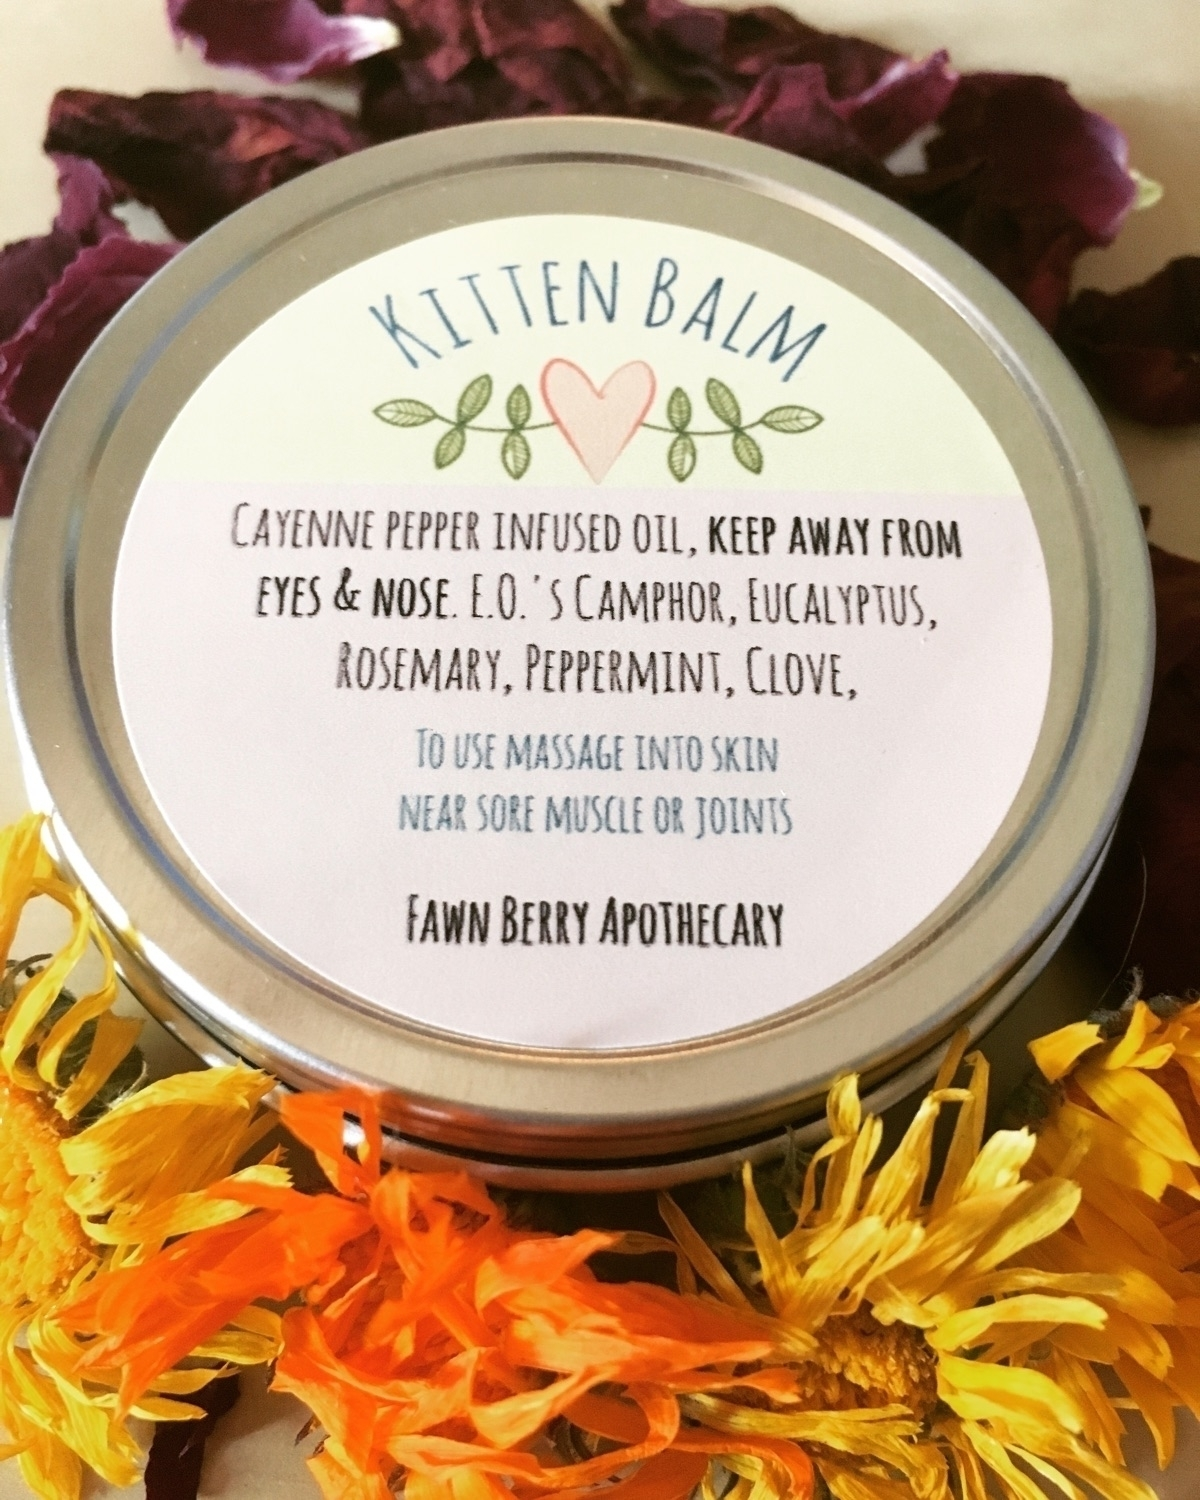 super excited kitten salves lef - fawnberryapothecary | ello